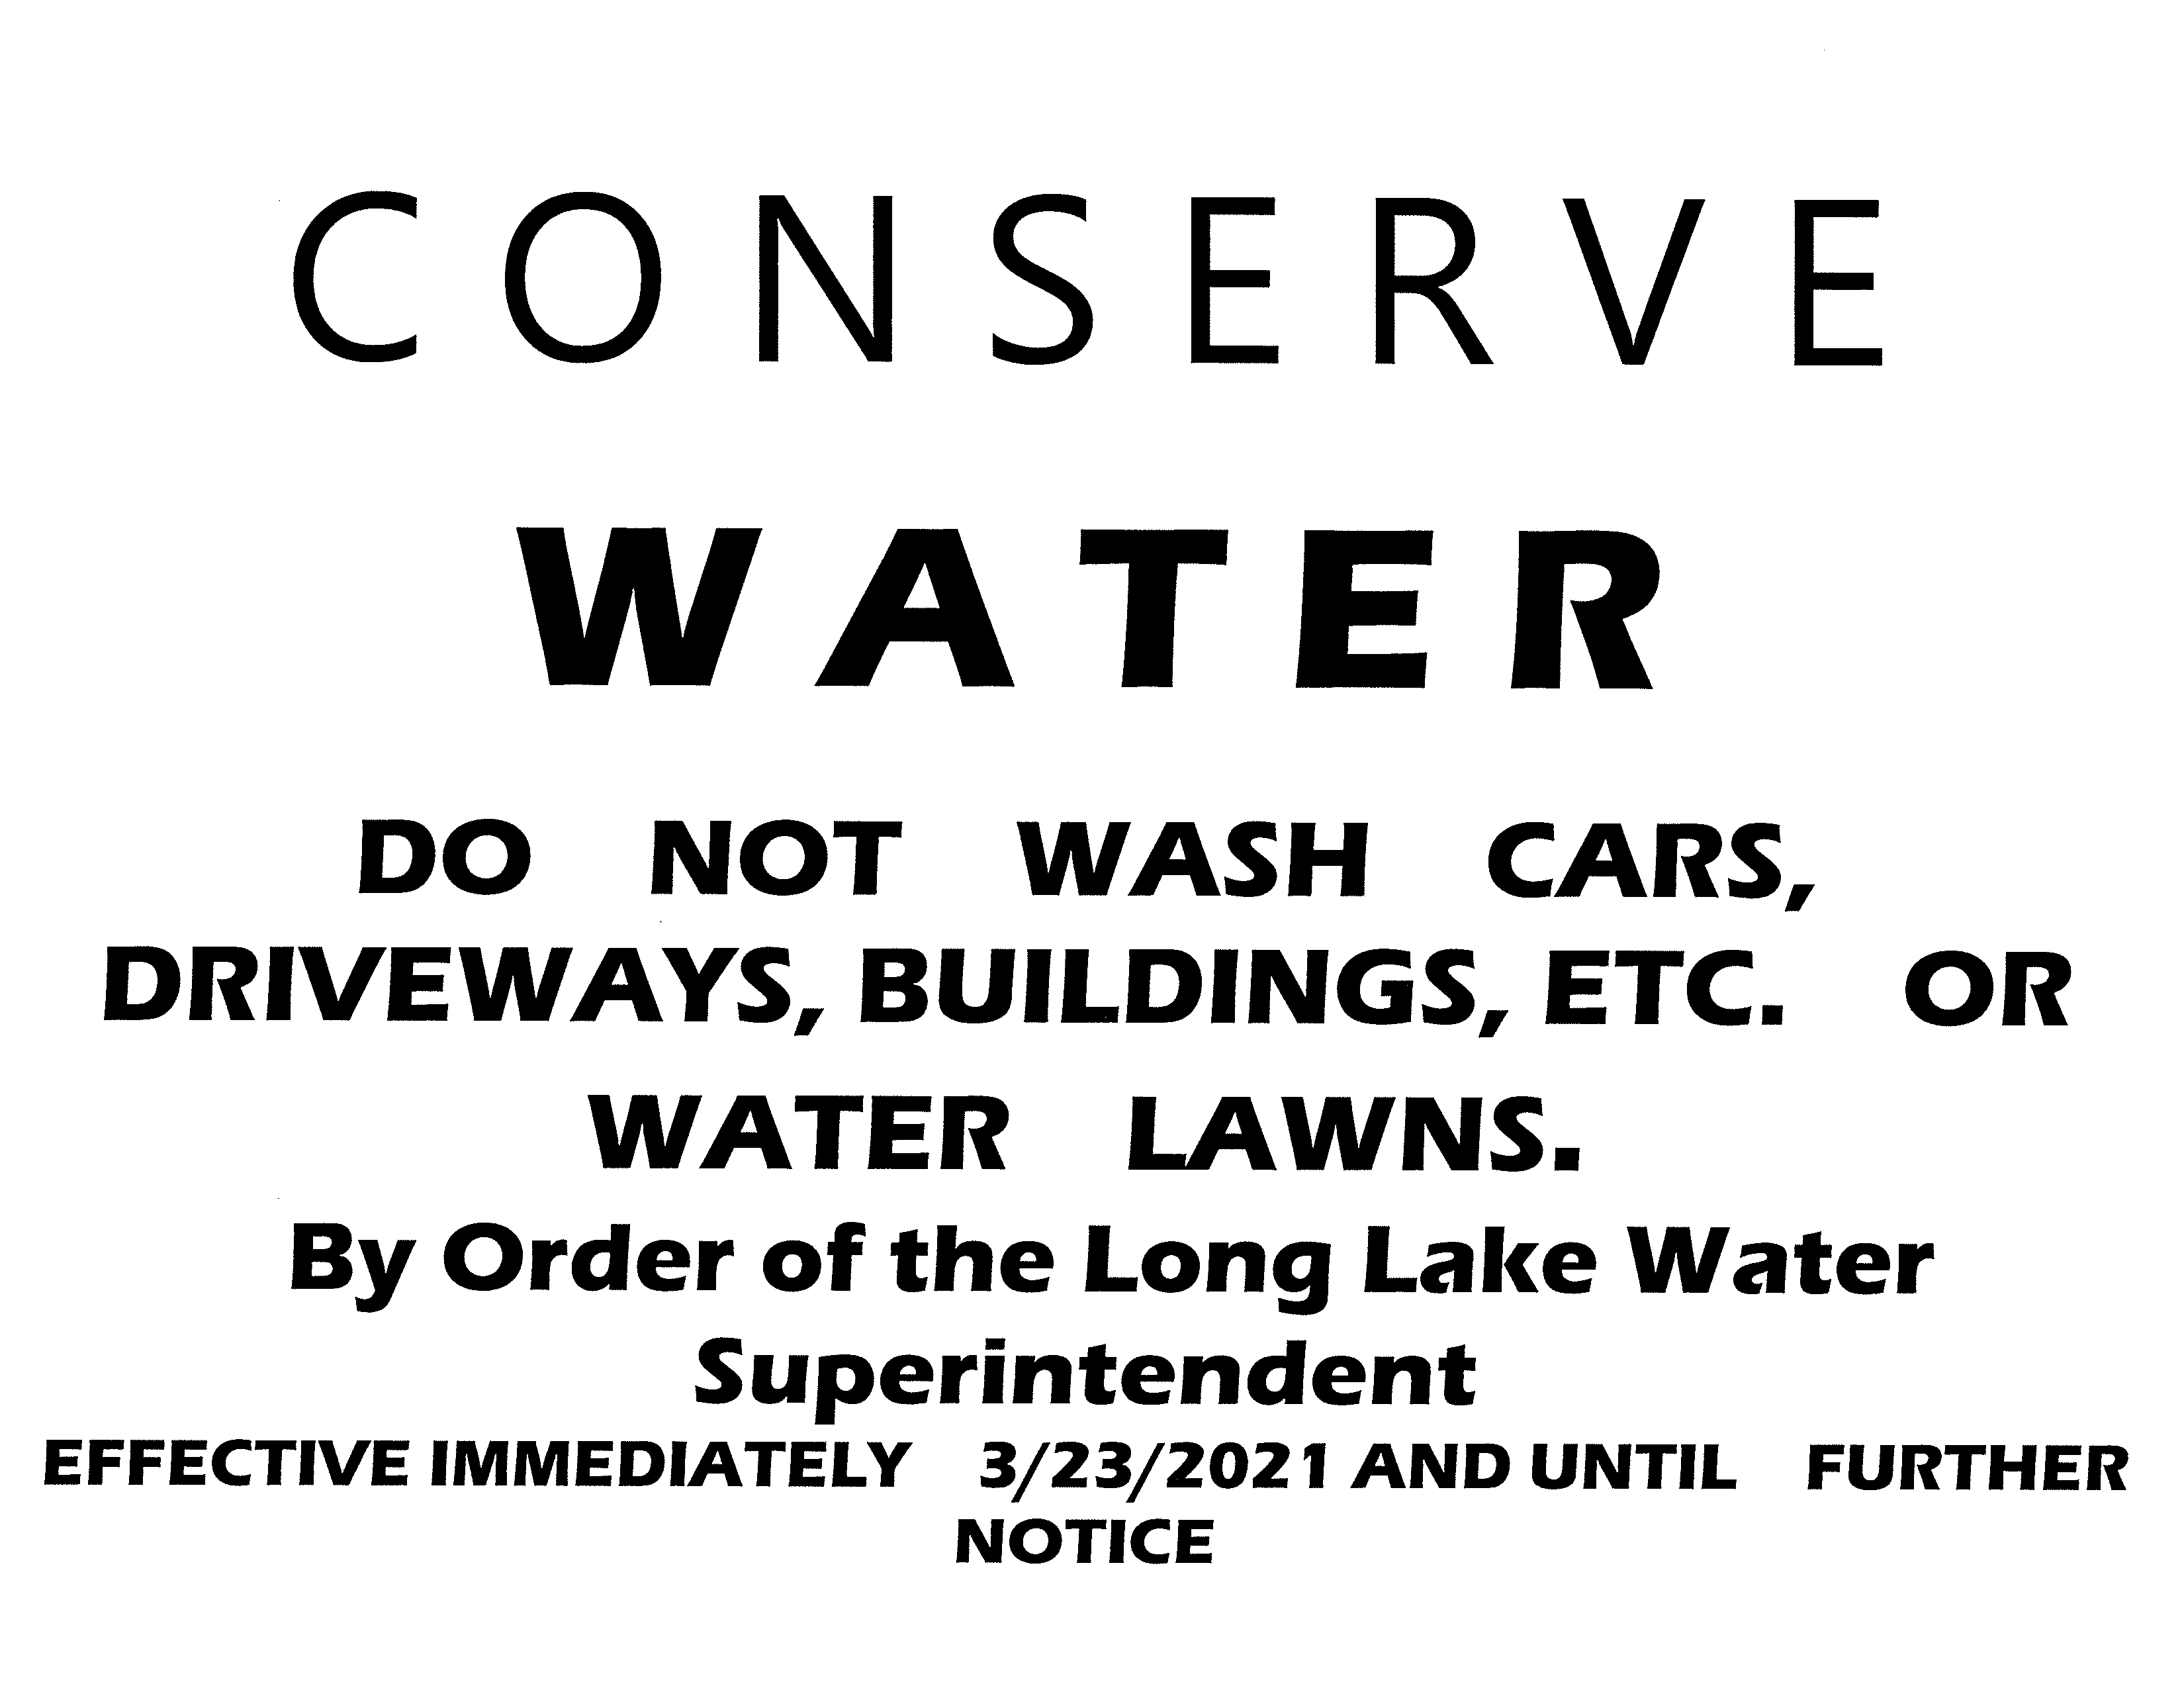 C O N S E R V E  W A T E R  DO  NOT  WASH  CARS, DRIVEWAYS, BUILDINGS, ETC.  OR  WATER  LAWNS.  By Order of the Long Lake Water Superintendent  EFFECTIVE IMMEDIATELY  3/23/2021 AND UNTIL  FURTHER  NOTICE